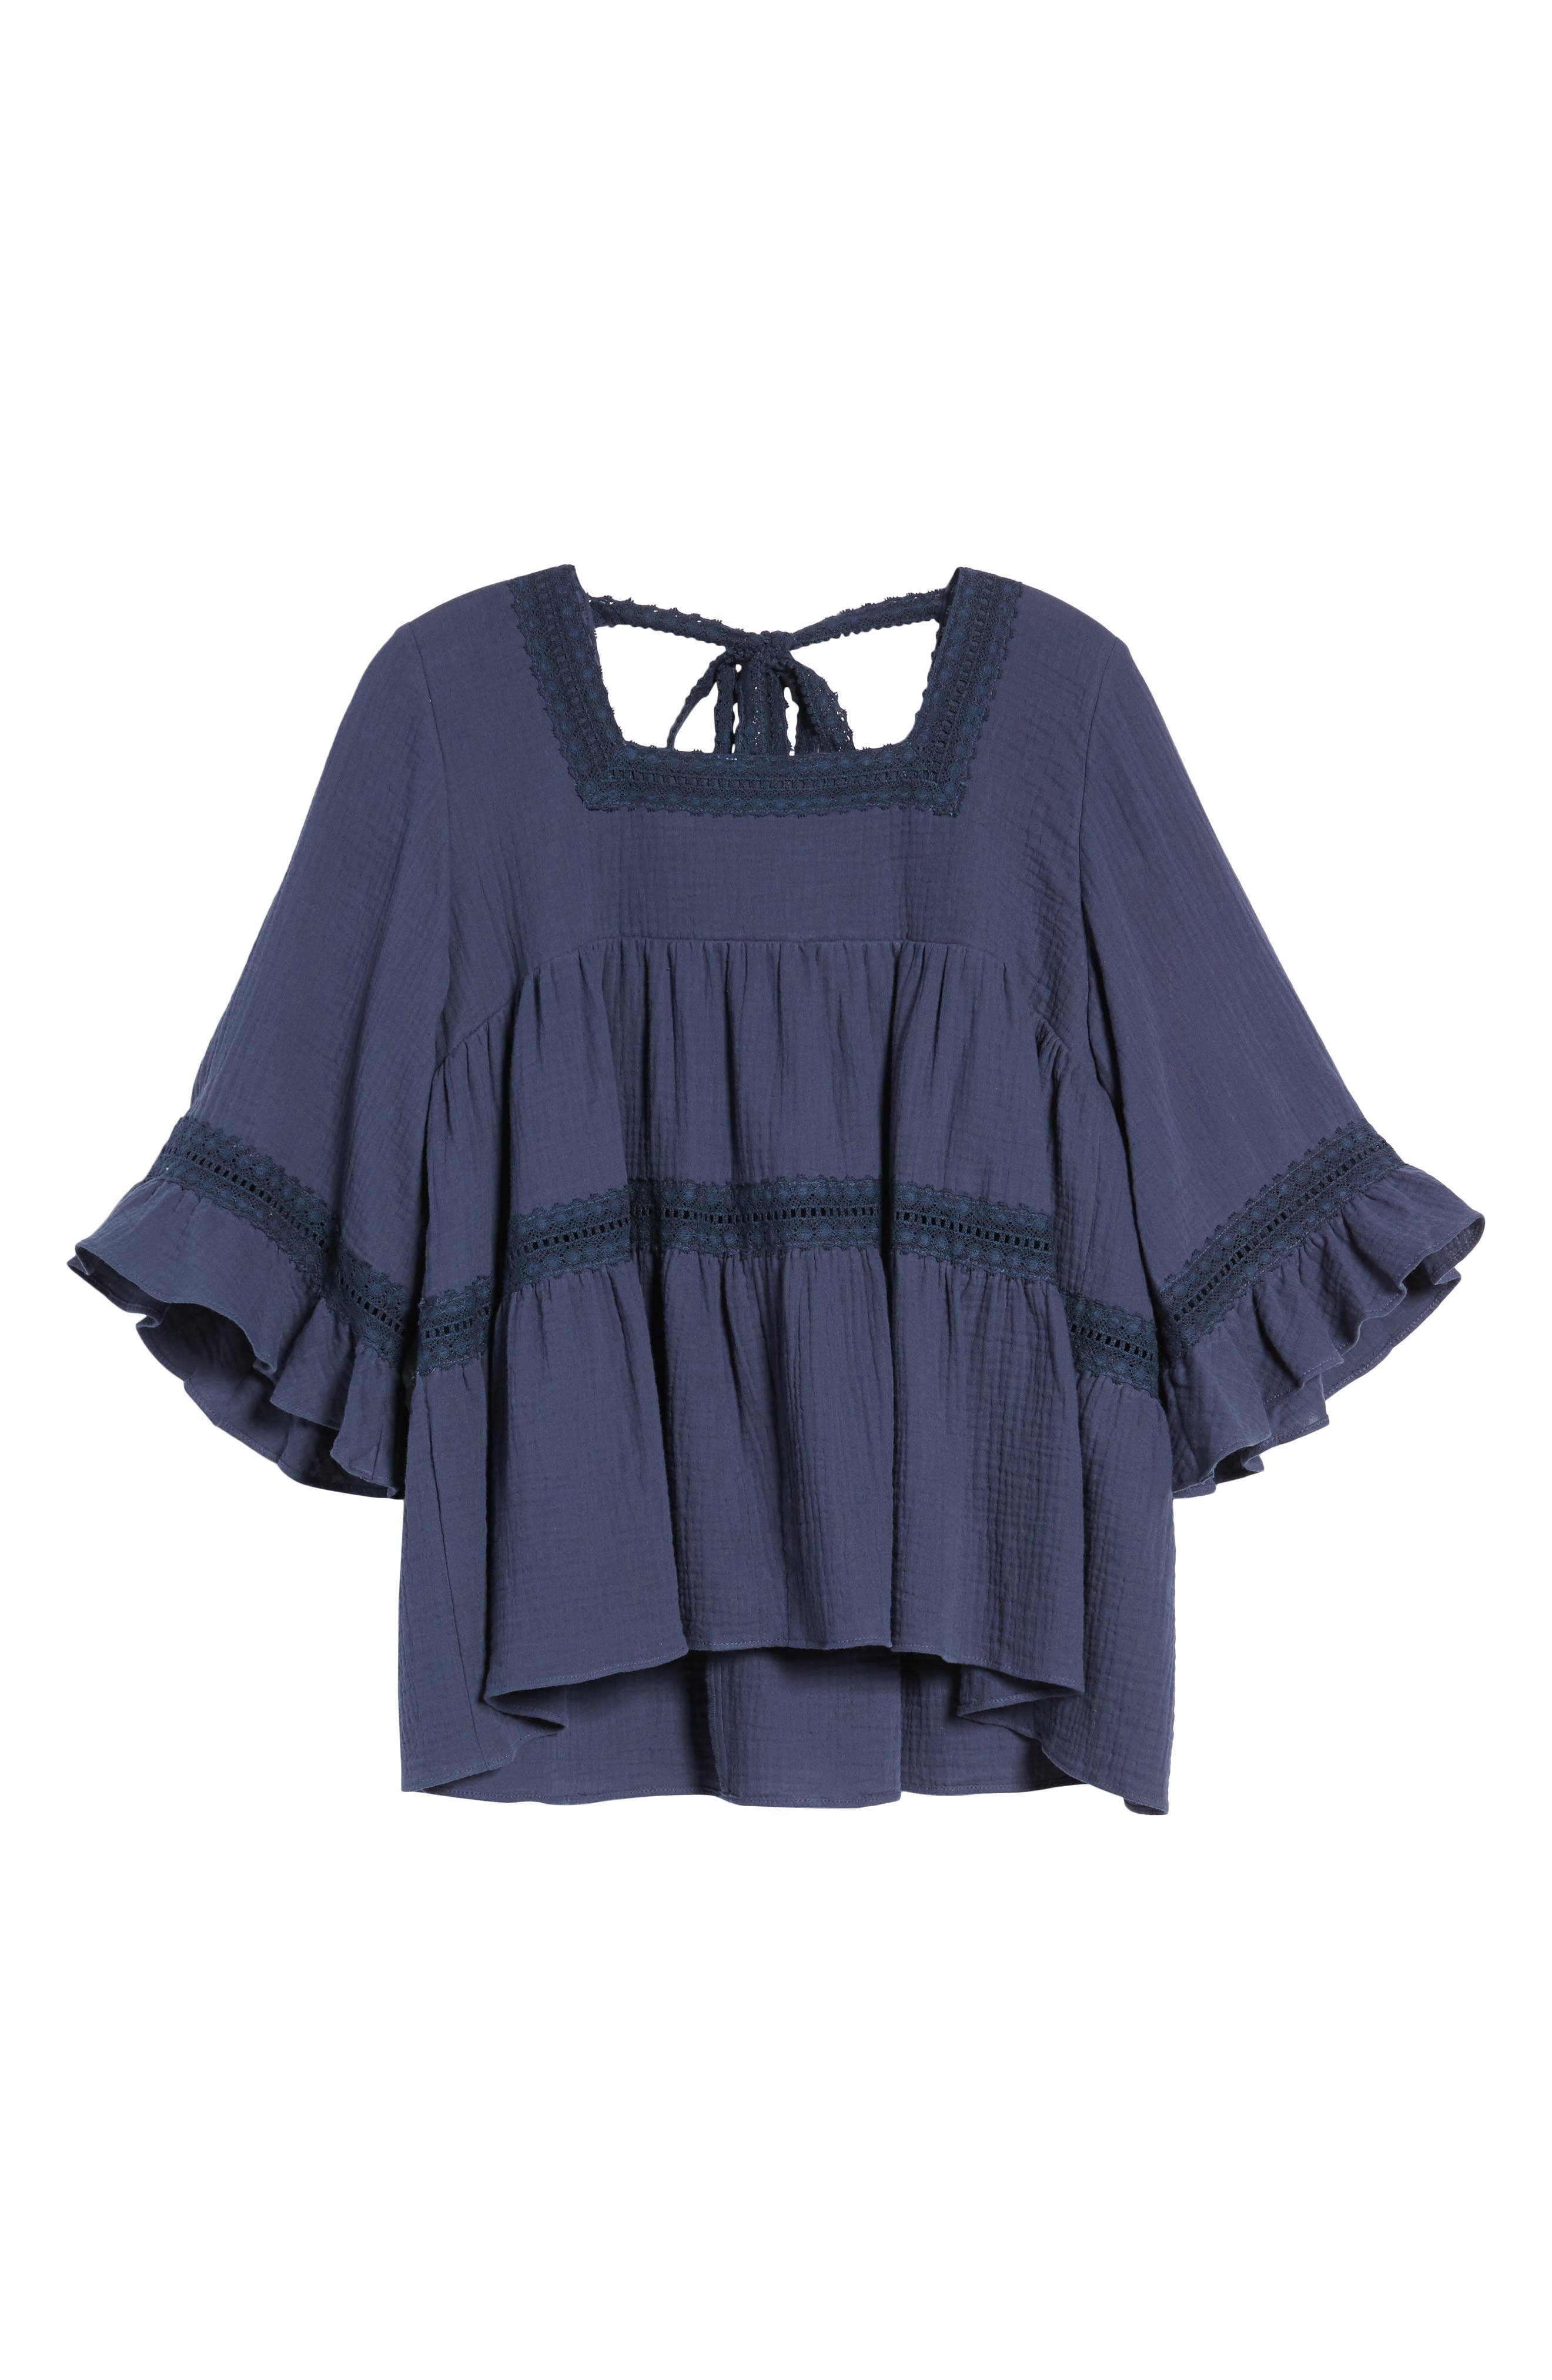 Lace Trim Blouse,                             Alternate thumbnail 7, color,                             Navy Indigo